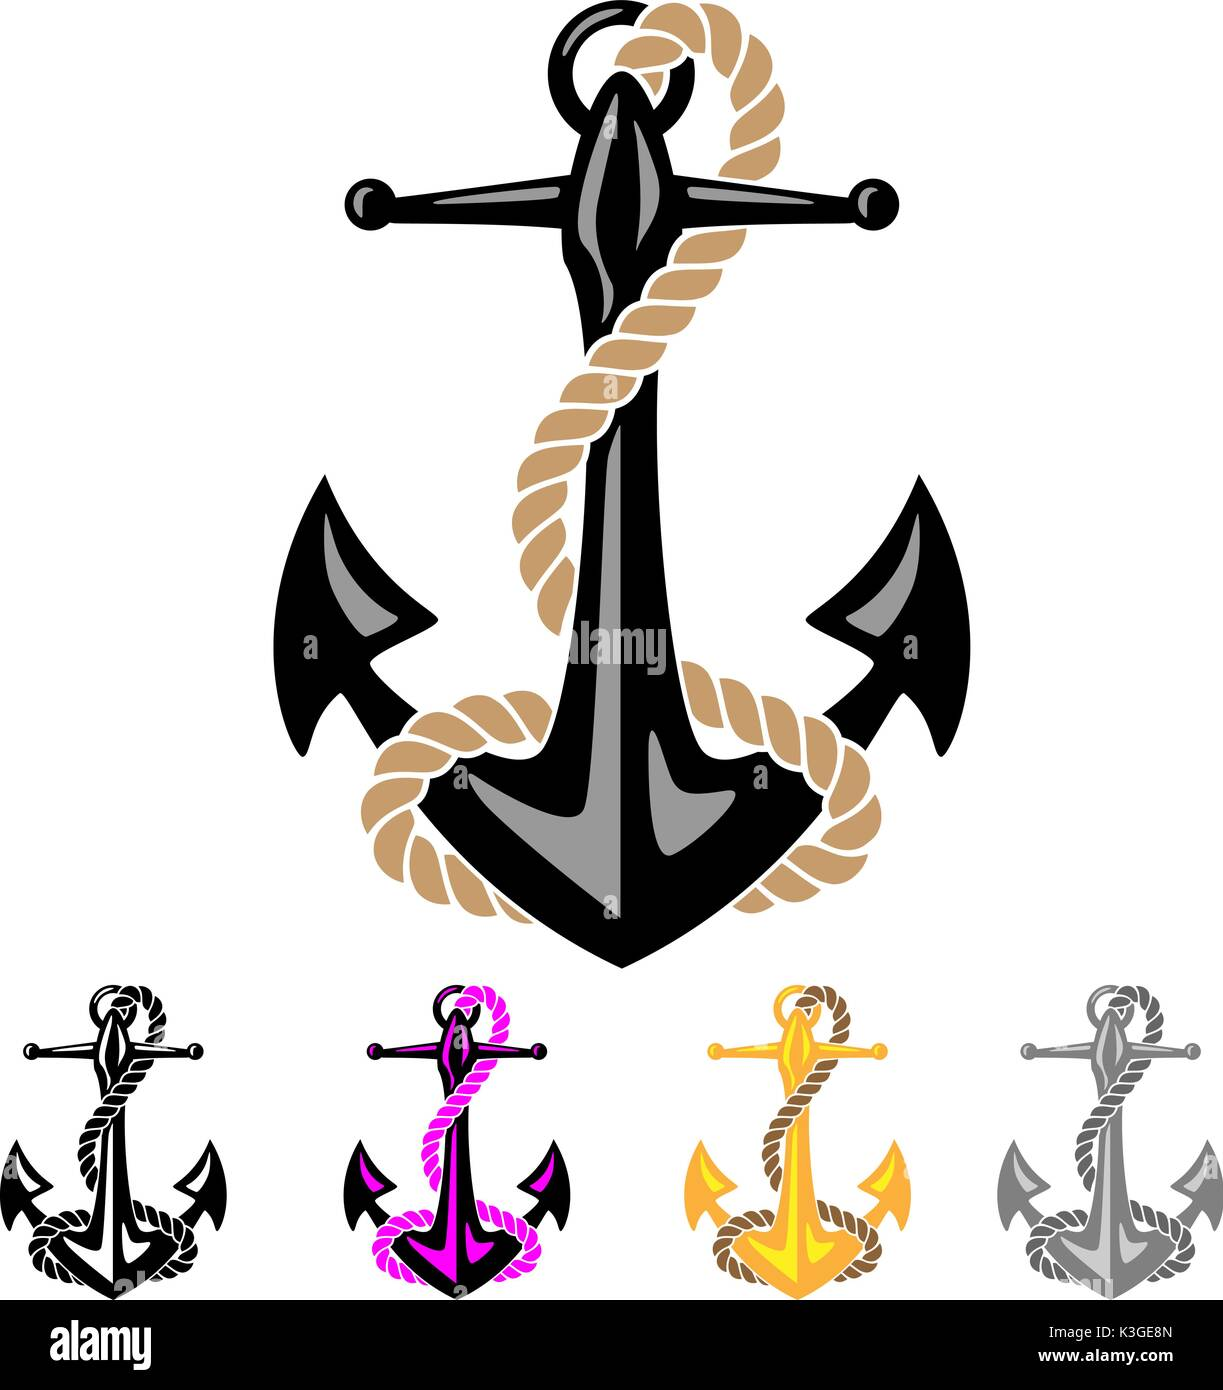 Anchor with Rope - Stock Image